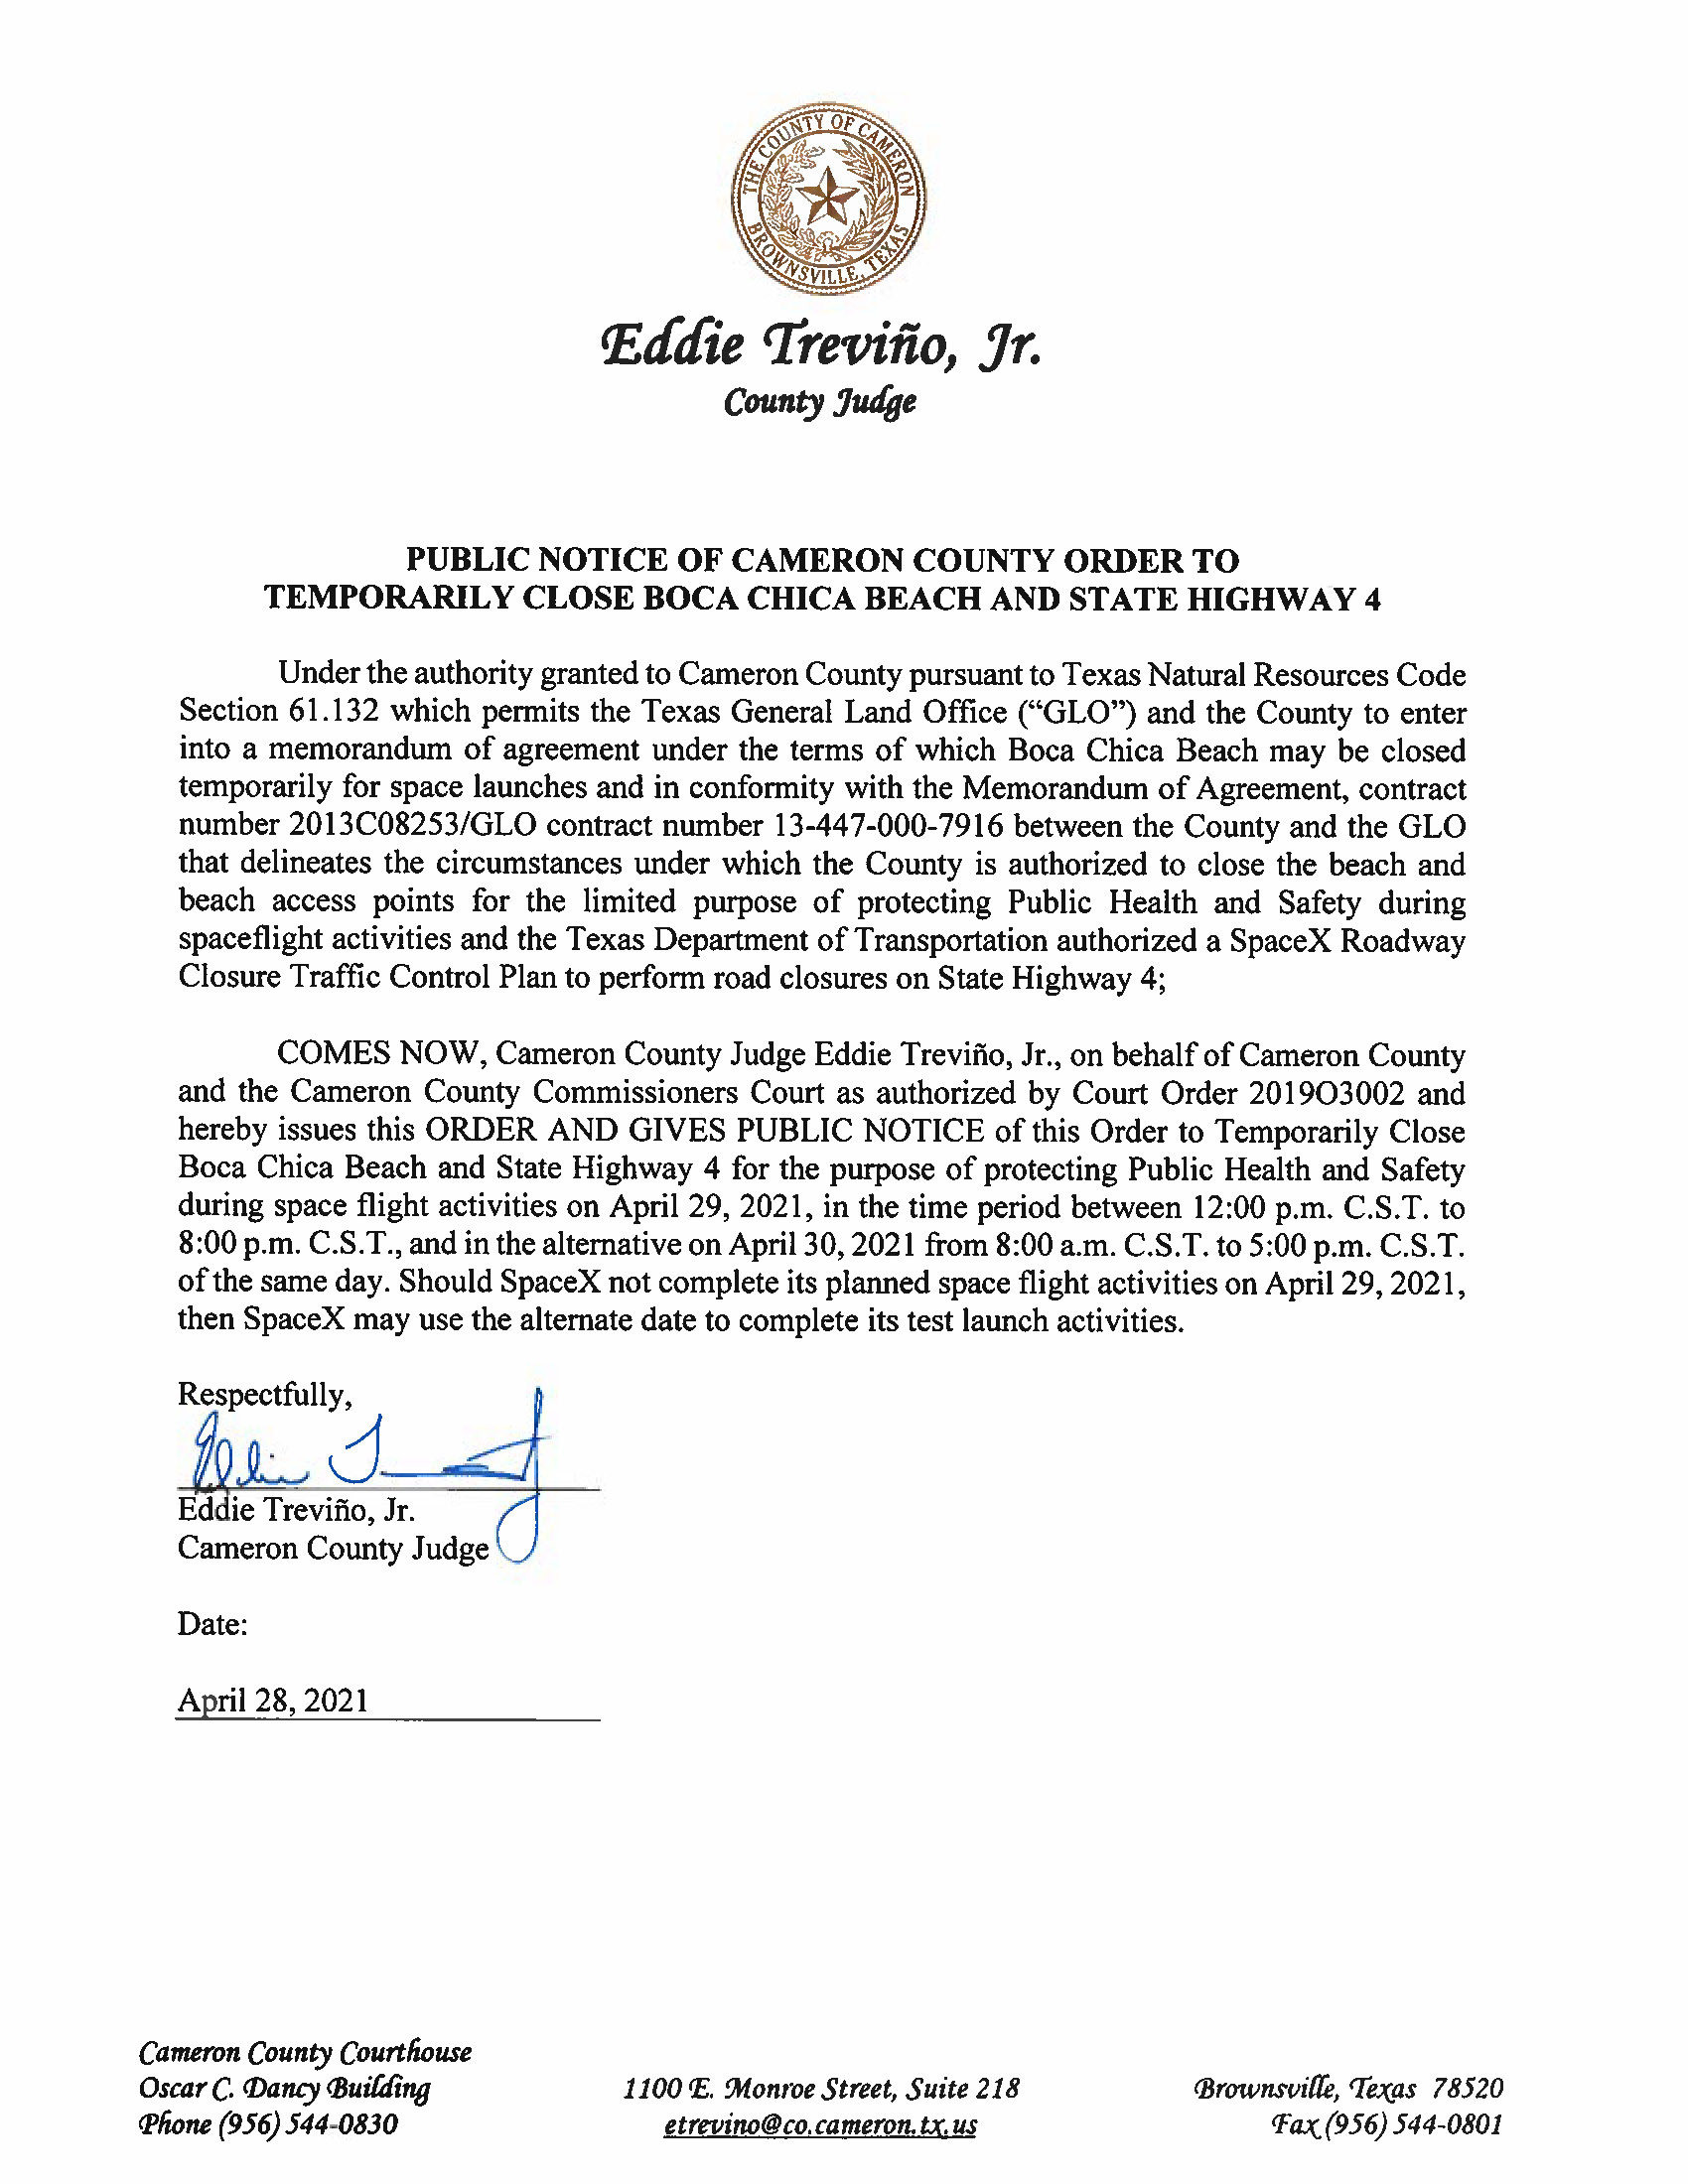 PUBLIC NOTICE OF CAMERON COUNTY ORDER TO TEMP. BEACH CLOSURE AND HWY.04.29.2021